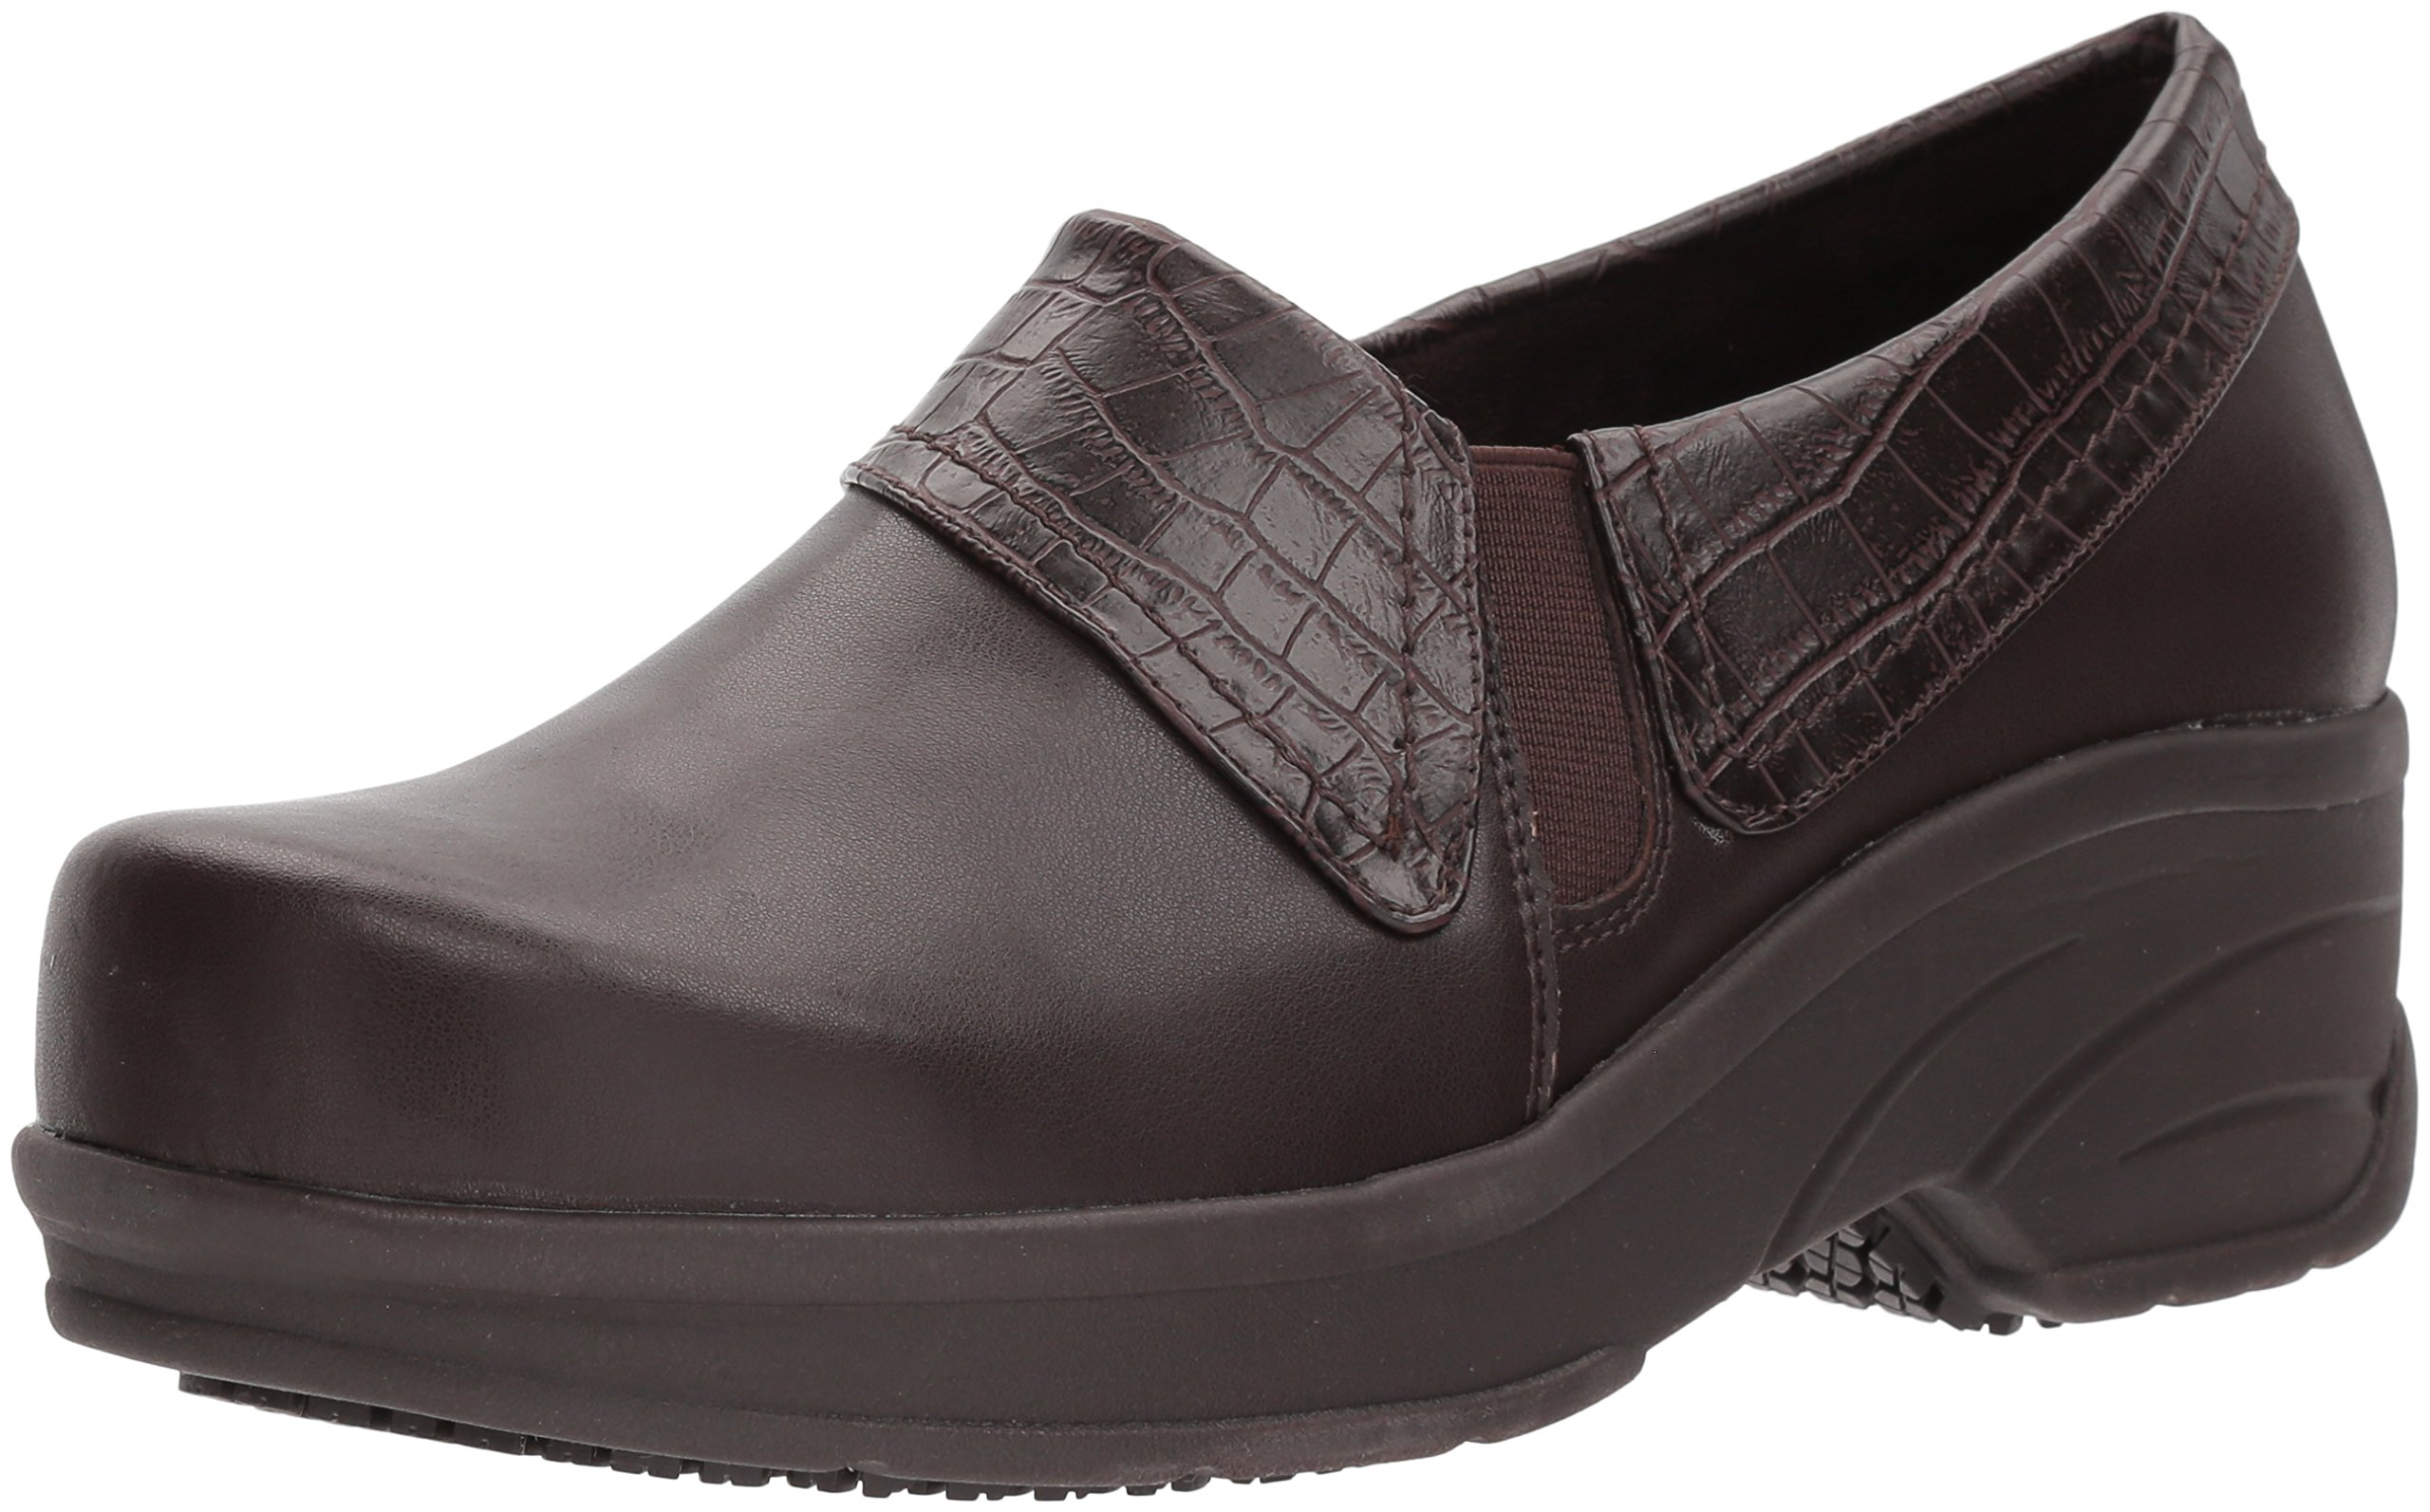 Easy Works Women's Assist Health Care Professional Shoe, tan/Brown Crocodile, 8 W US by Easy Works